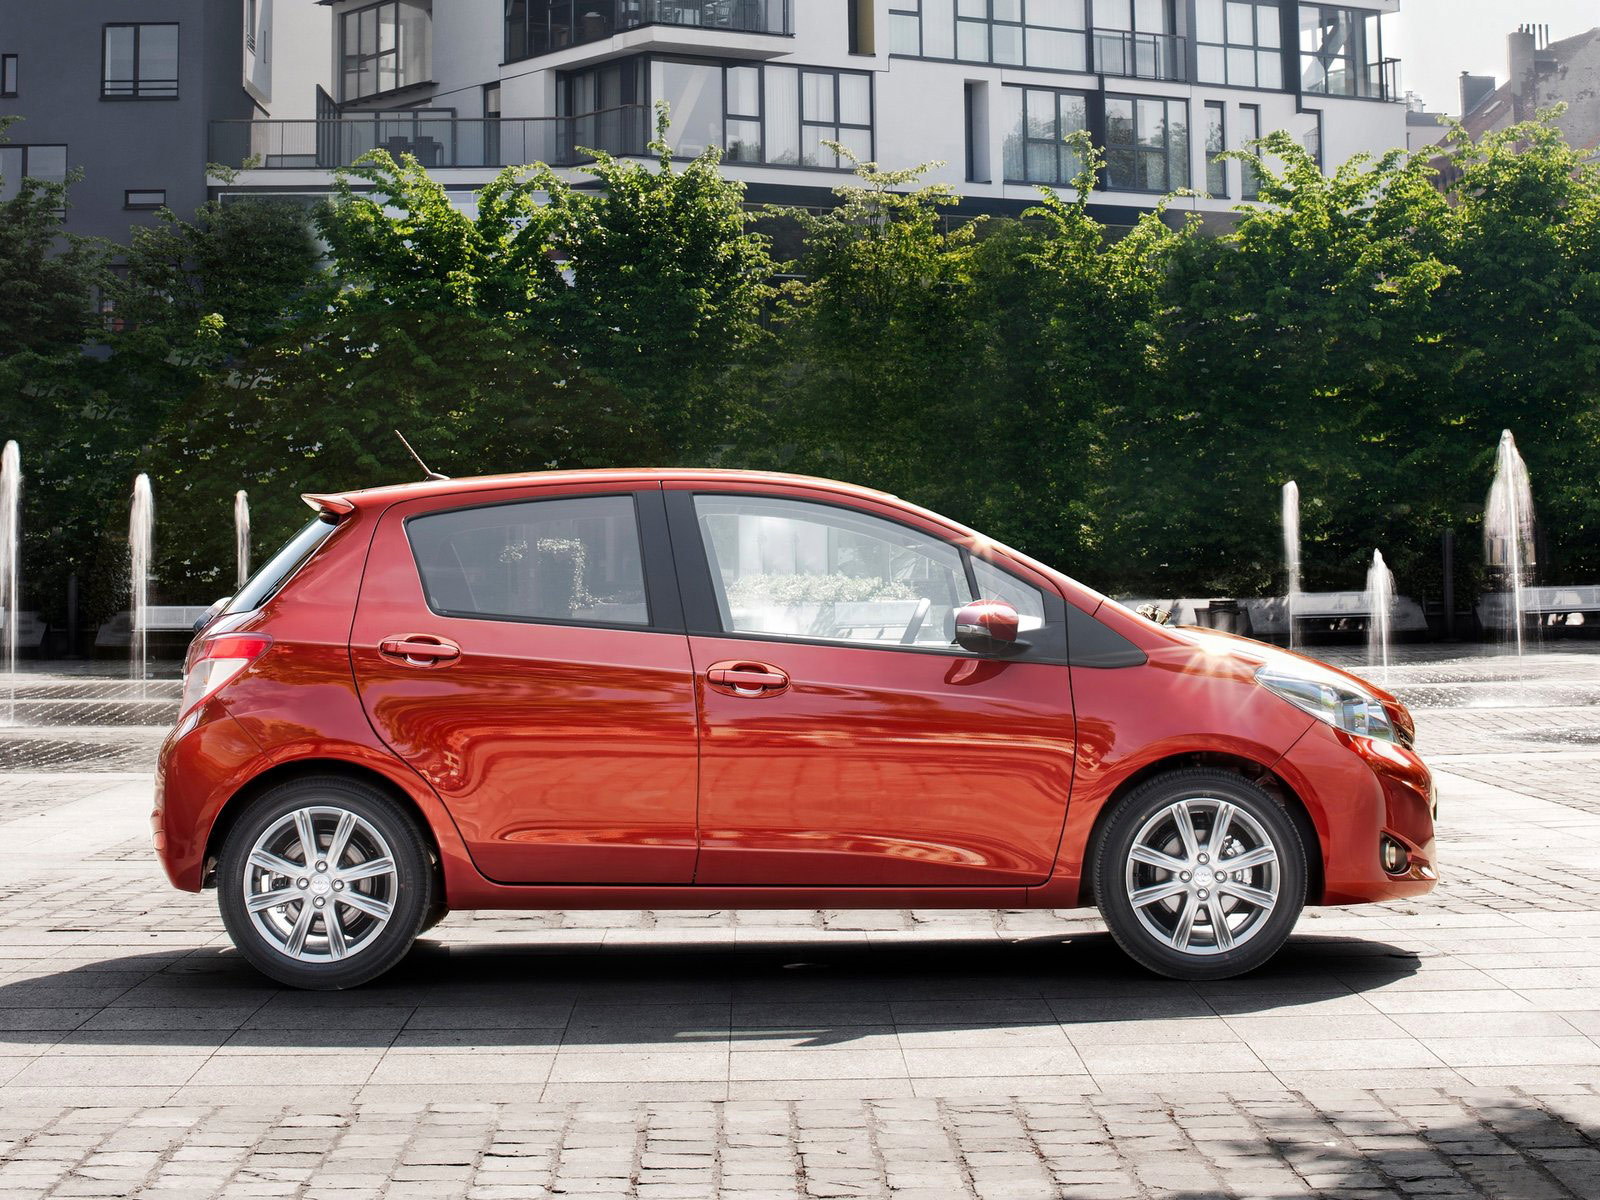 Toyota-Yaris_2012_japanese-car-wallpapers_2.jpg